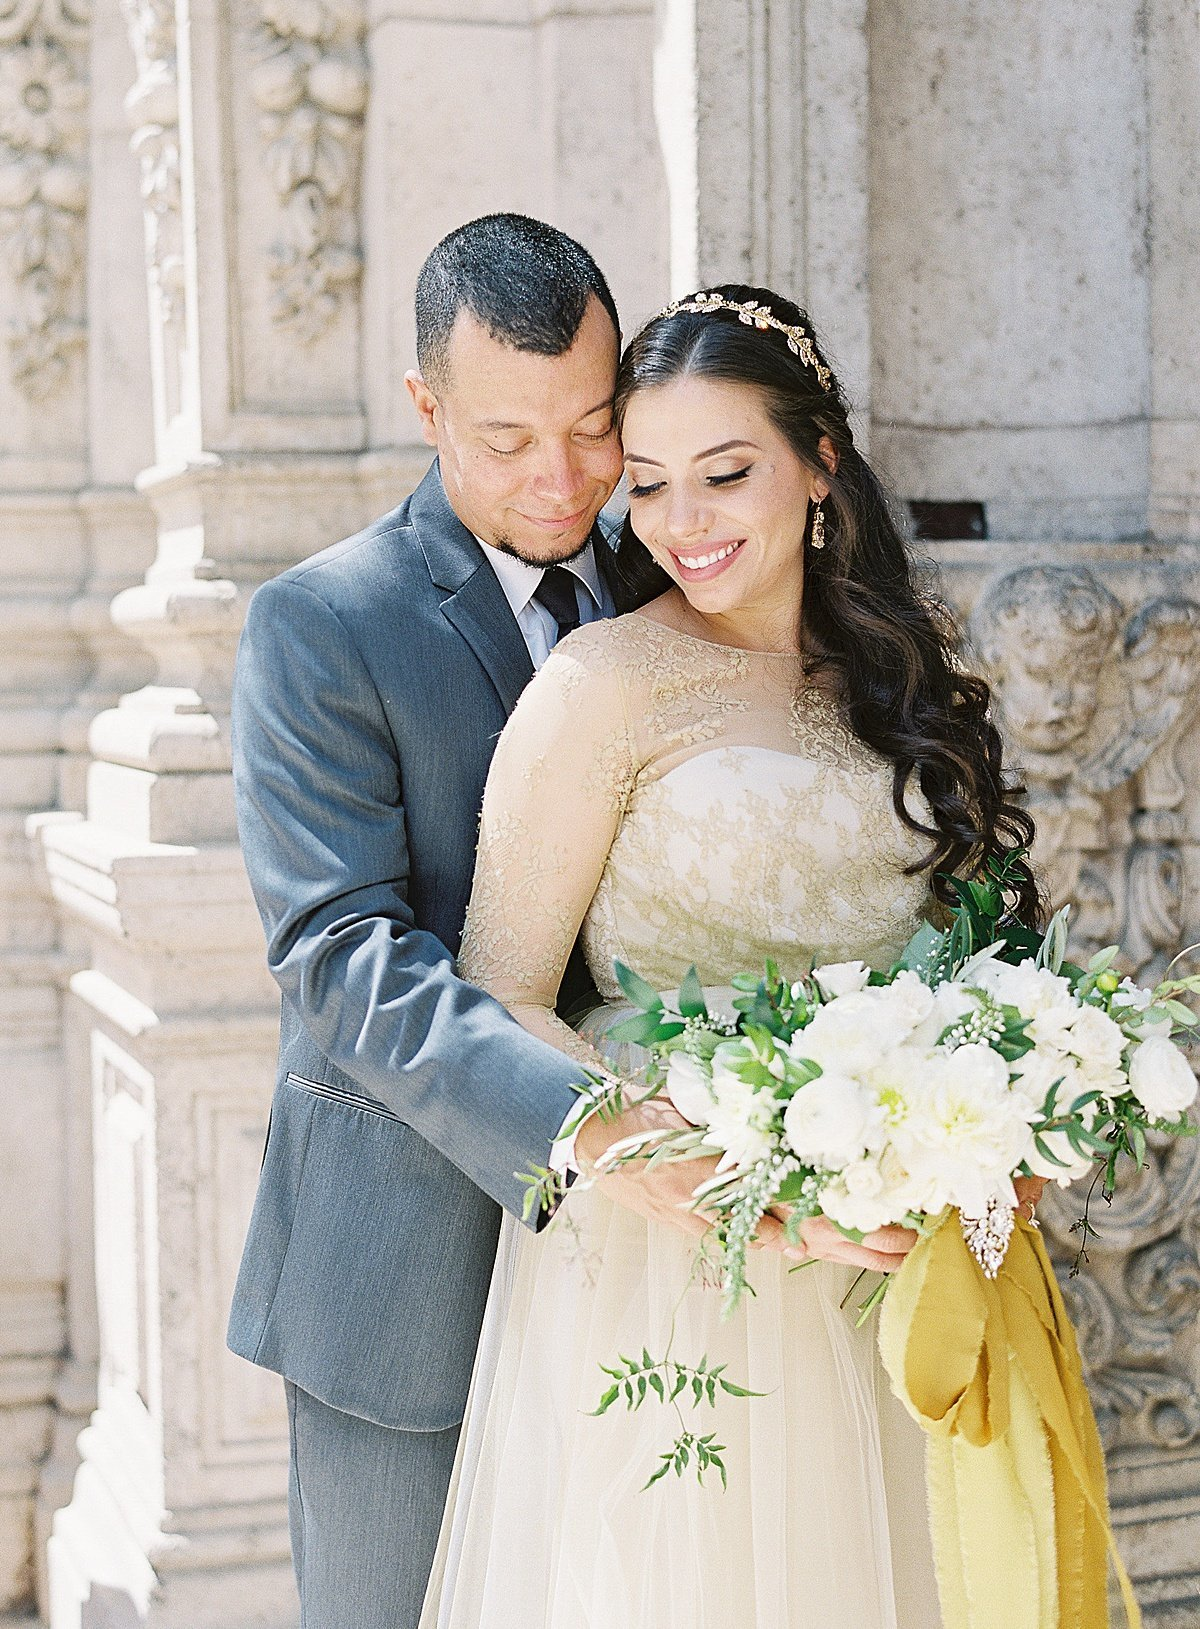 Posh Peony Mission Inn Lush Gray and Gold Greenery Wedding Flowers_0020